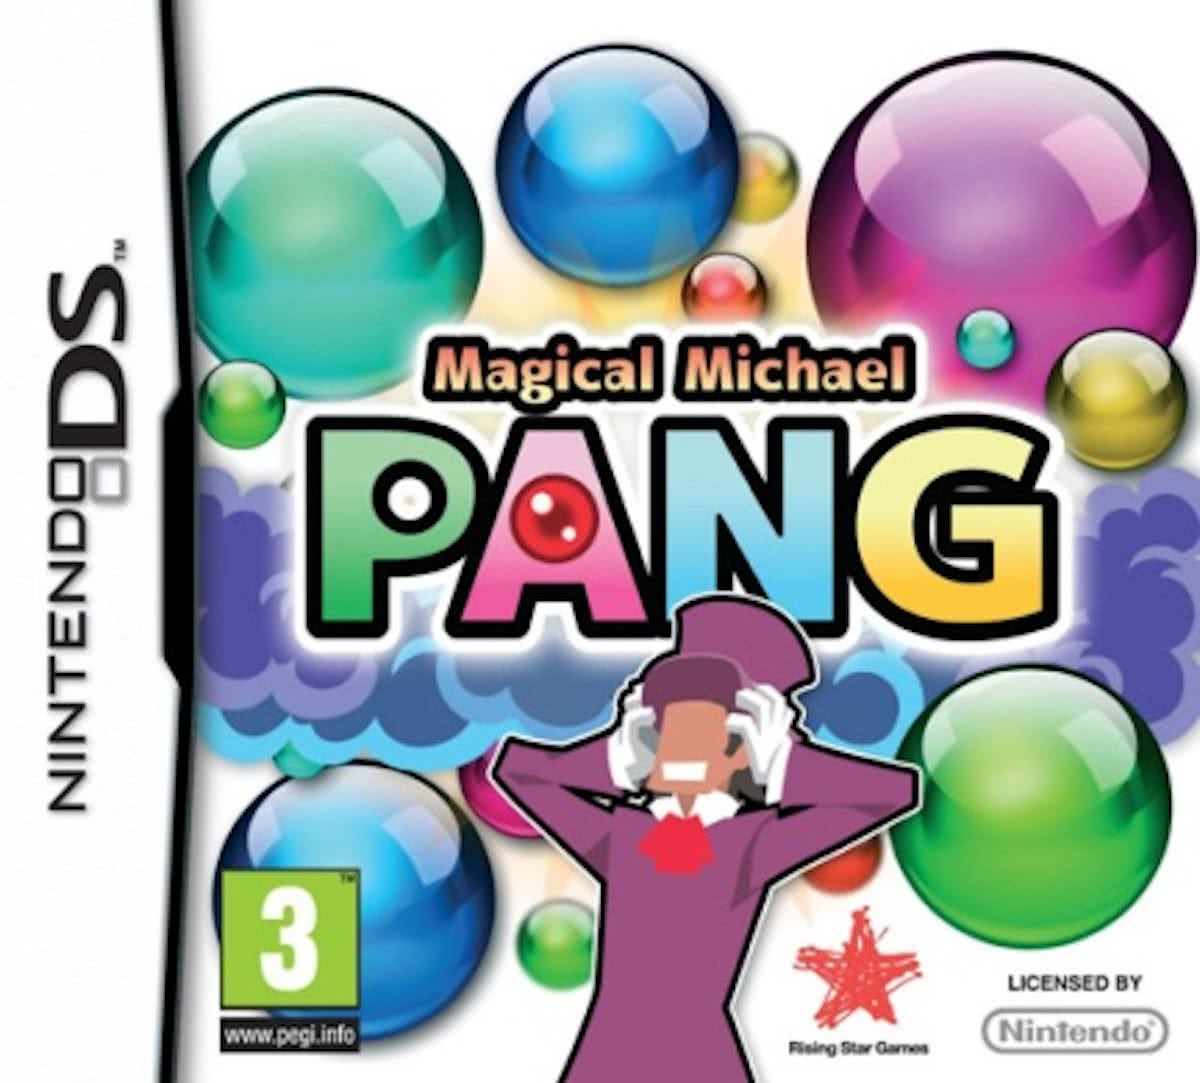 Pang - Magical Michael